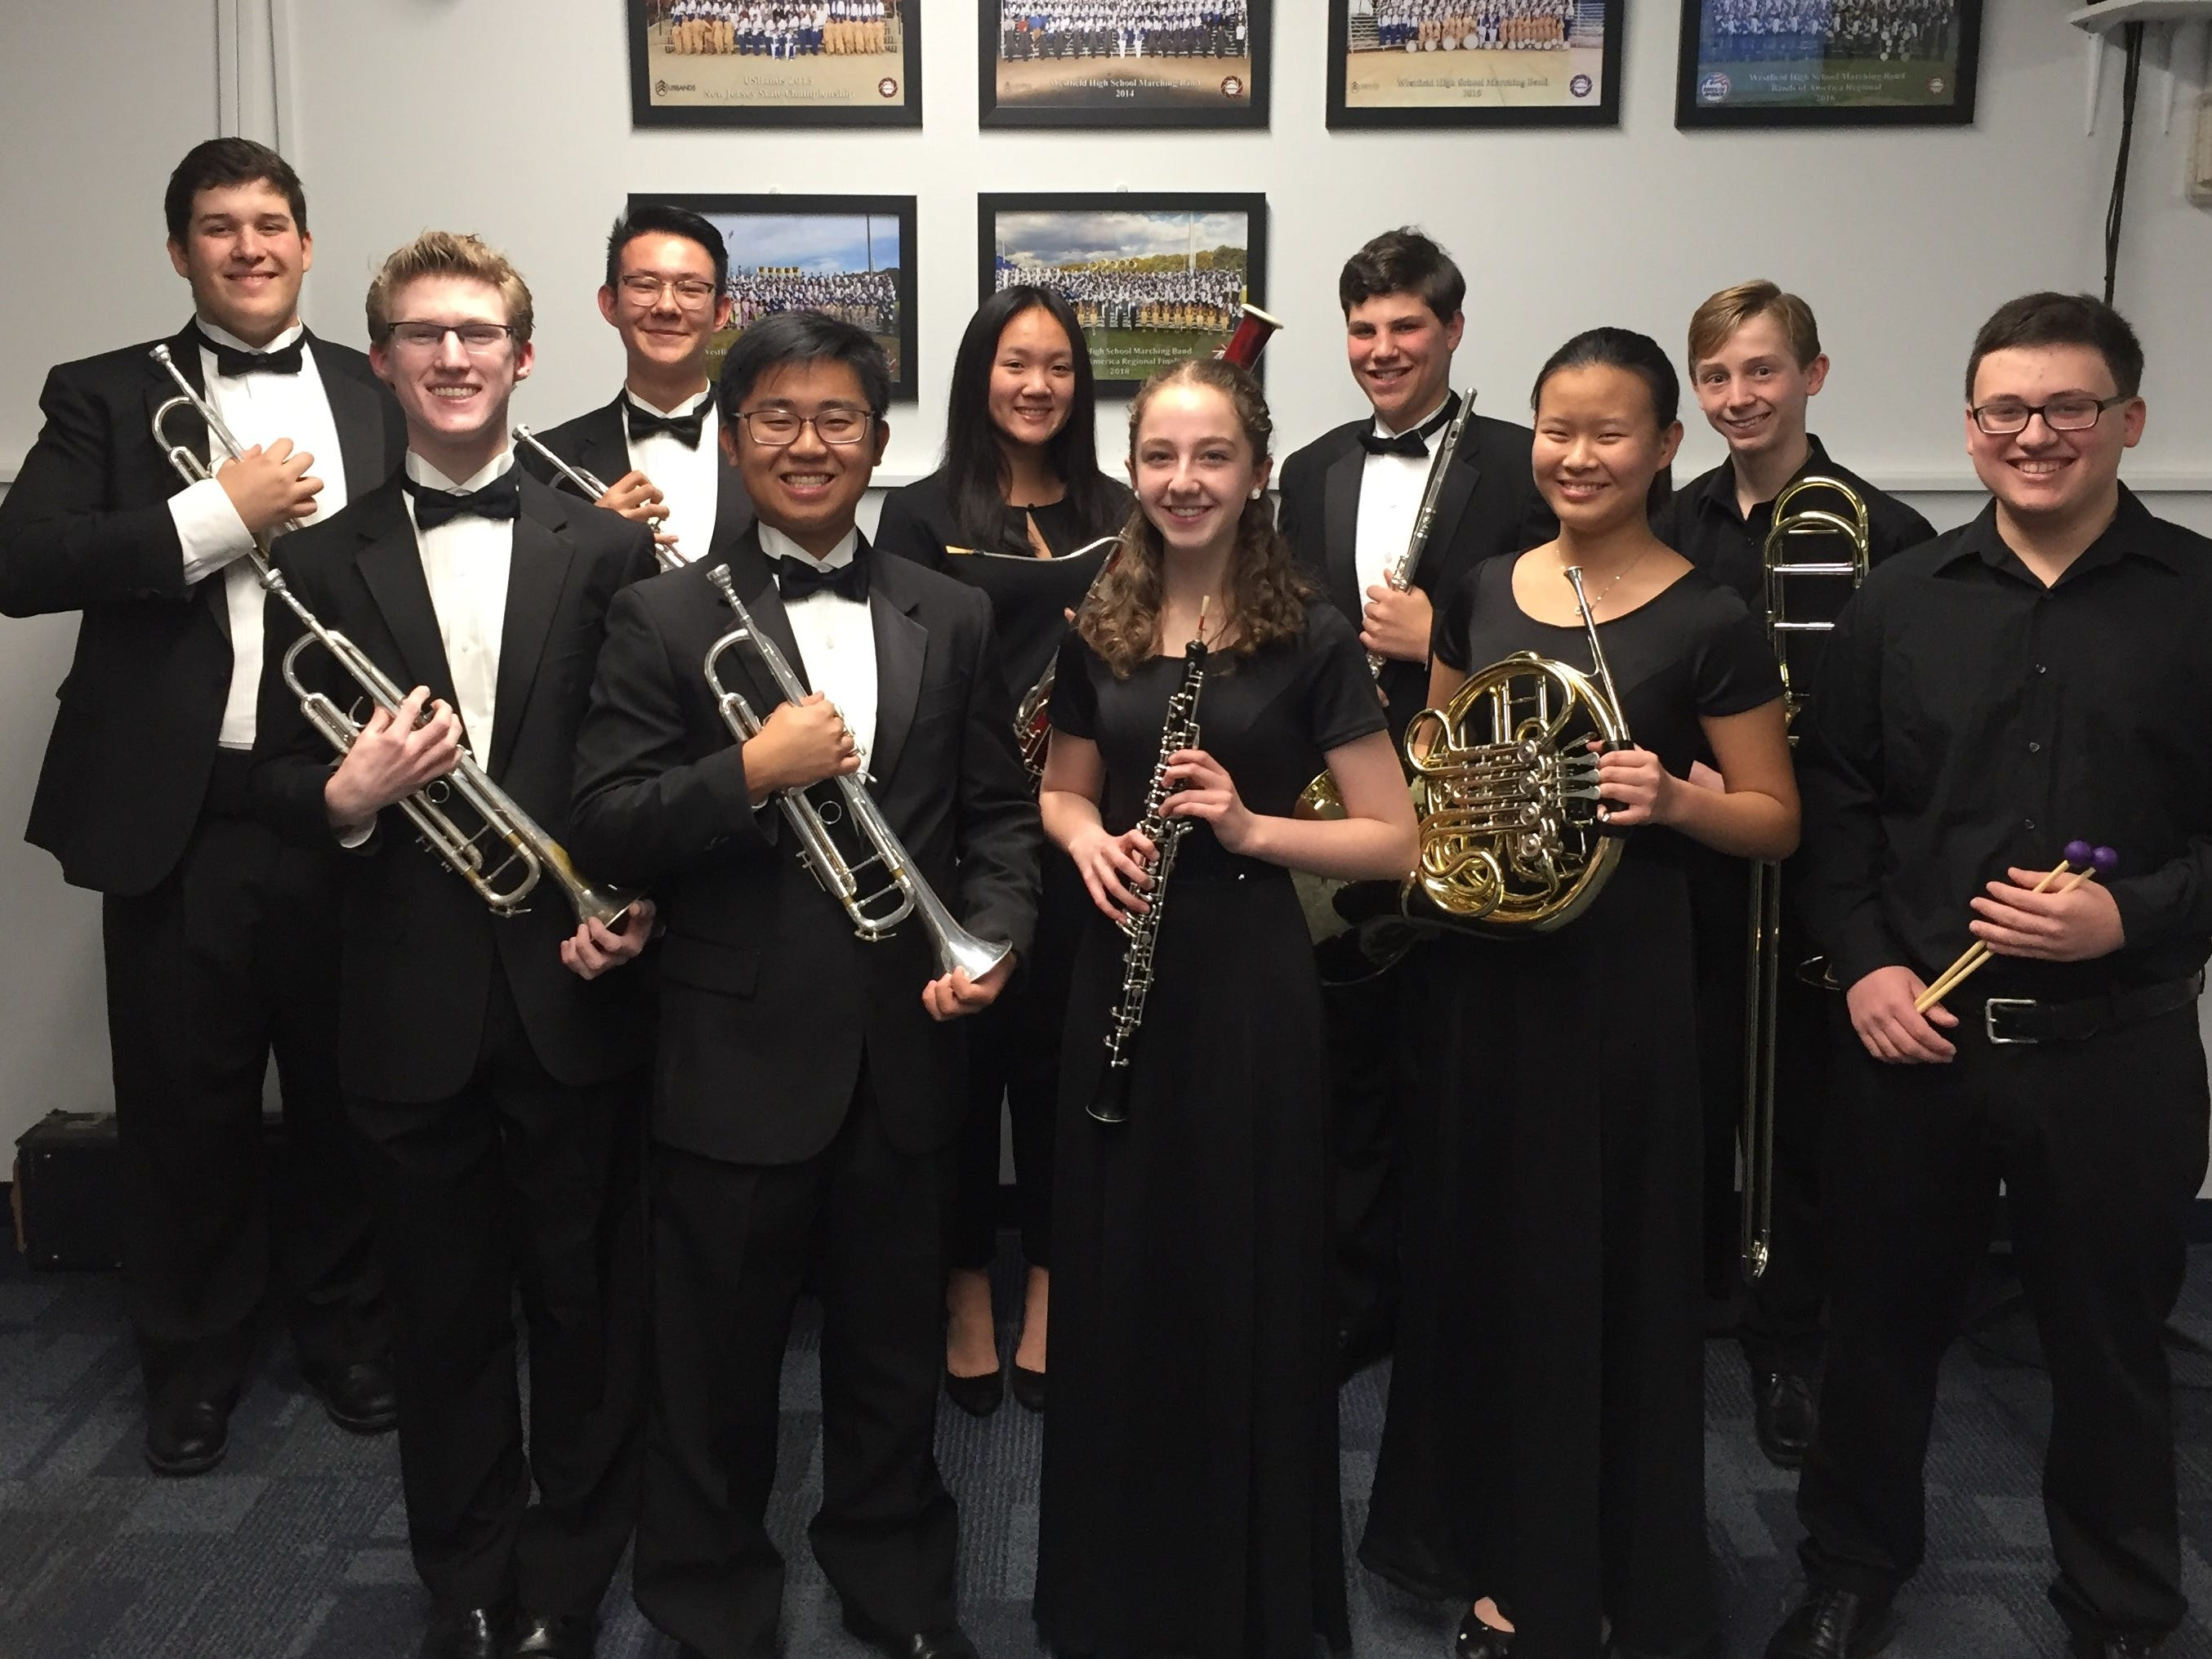 Eleven WHS students will perform with the CJMEA Region II Band in January.  First Row L-R):  Max Tennant, Austin Chen, Tia Lemberg, Aprina Wang, Ian Gurland.  Second Row (L-R):  Duncan Cook, Bryan Raber, Kailey Zhao, Robert Strauss, Conor Daly.  Not pictured:  Valerie Chang.